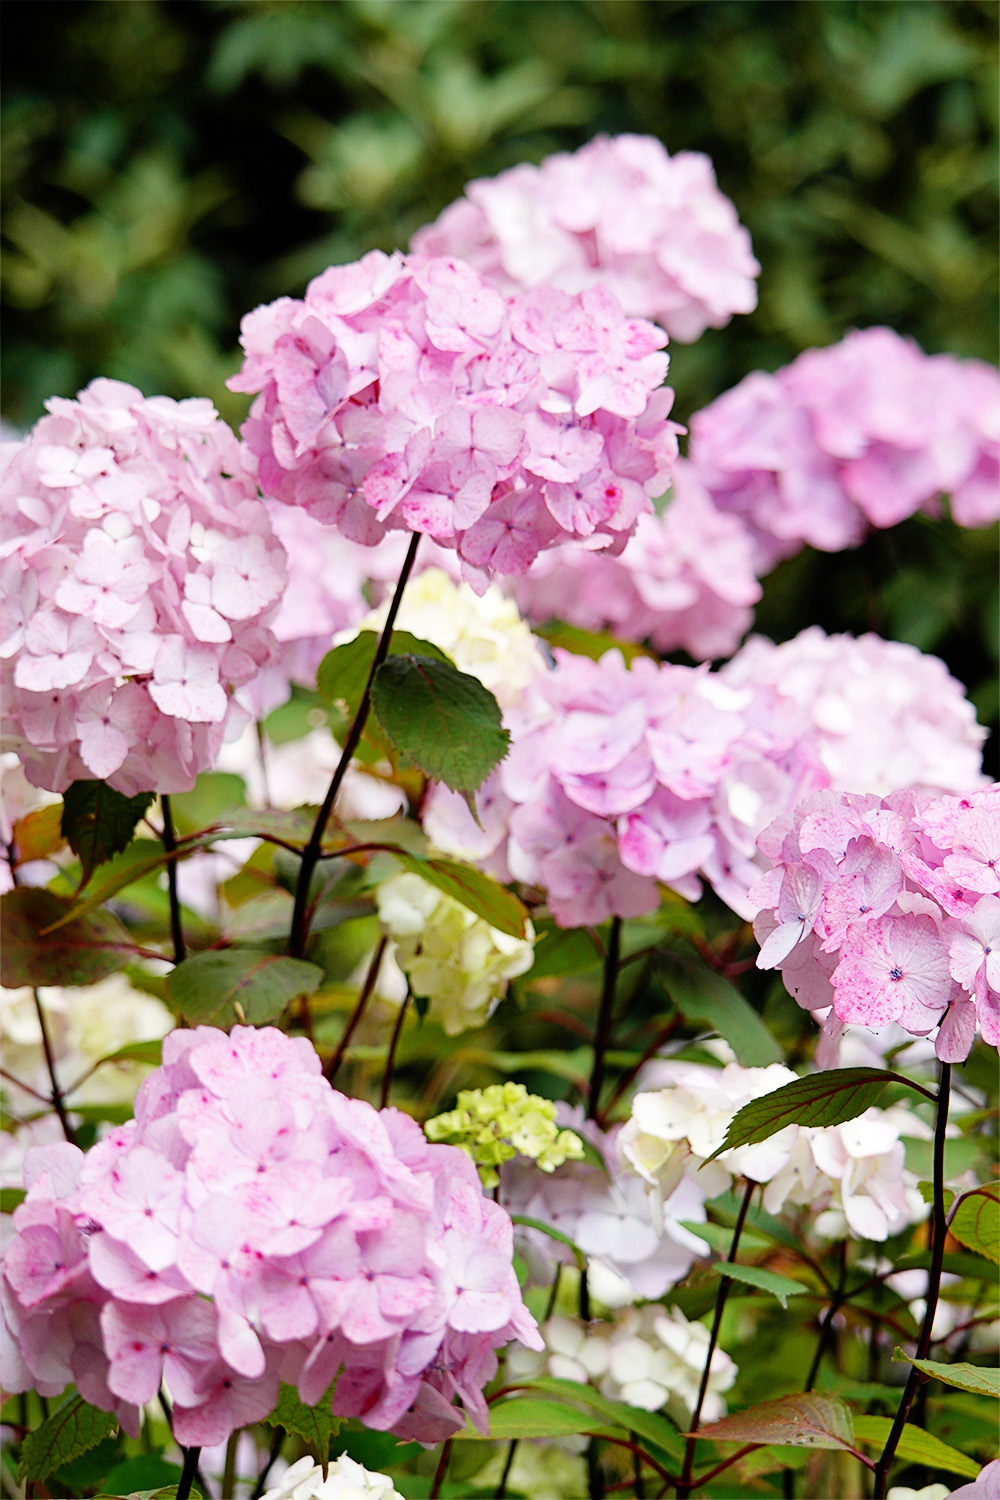 These pink hydrangeas remind me of candyfloss